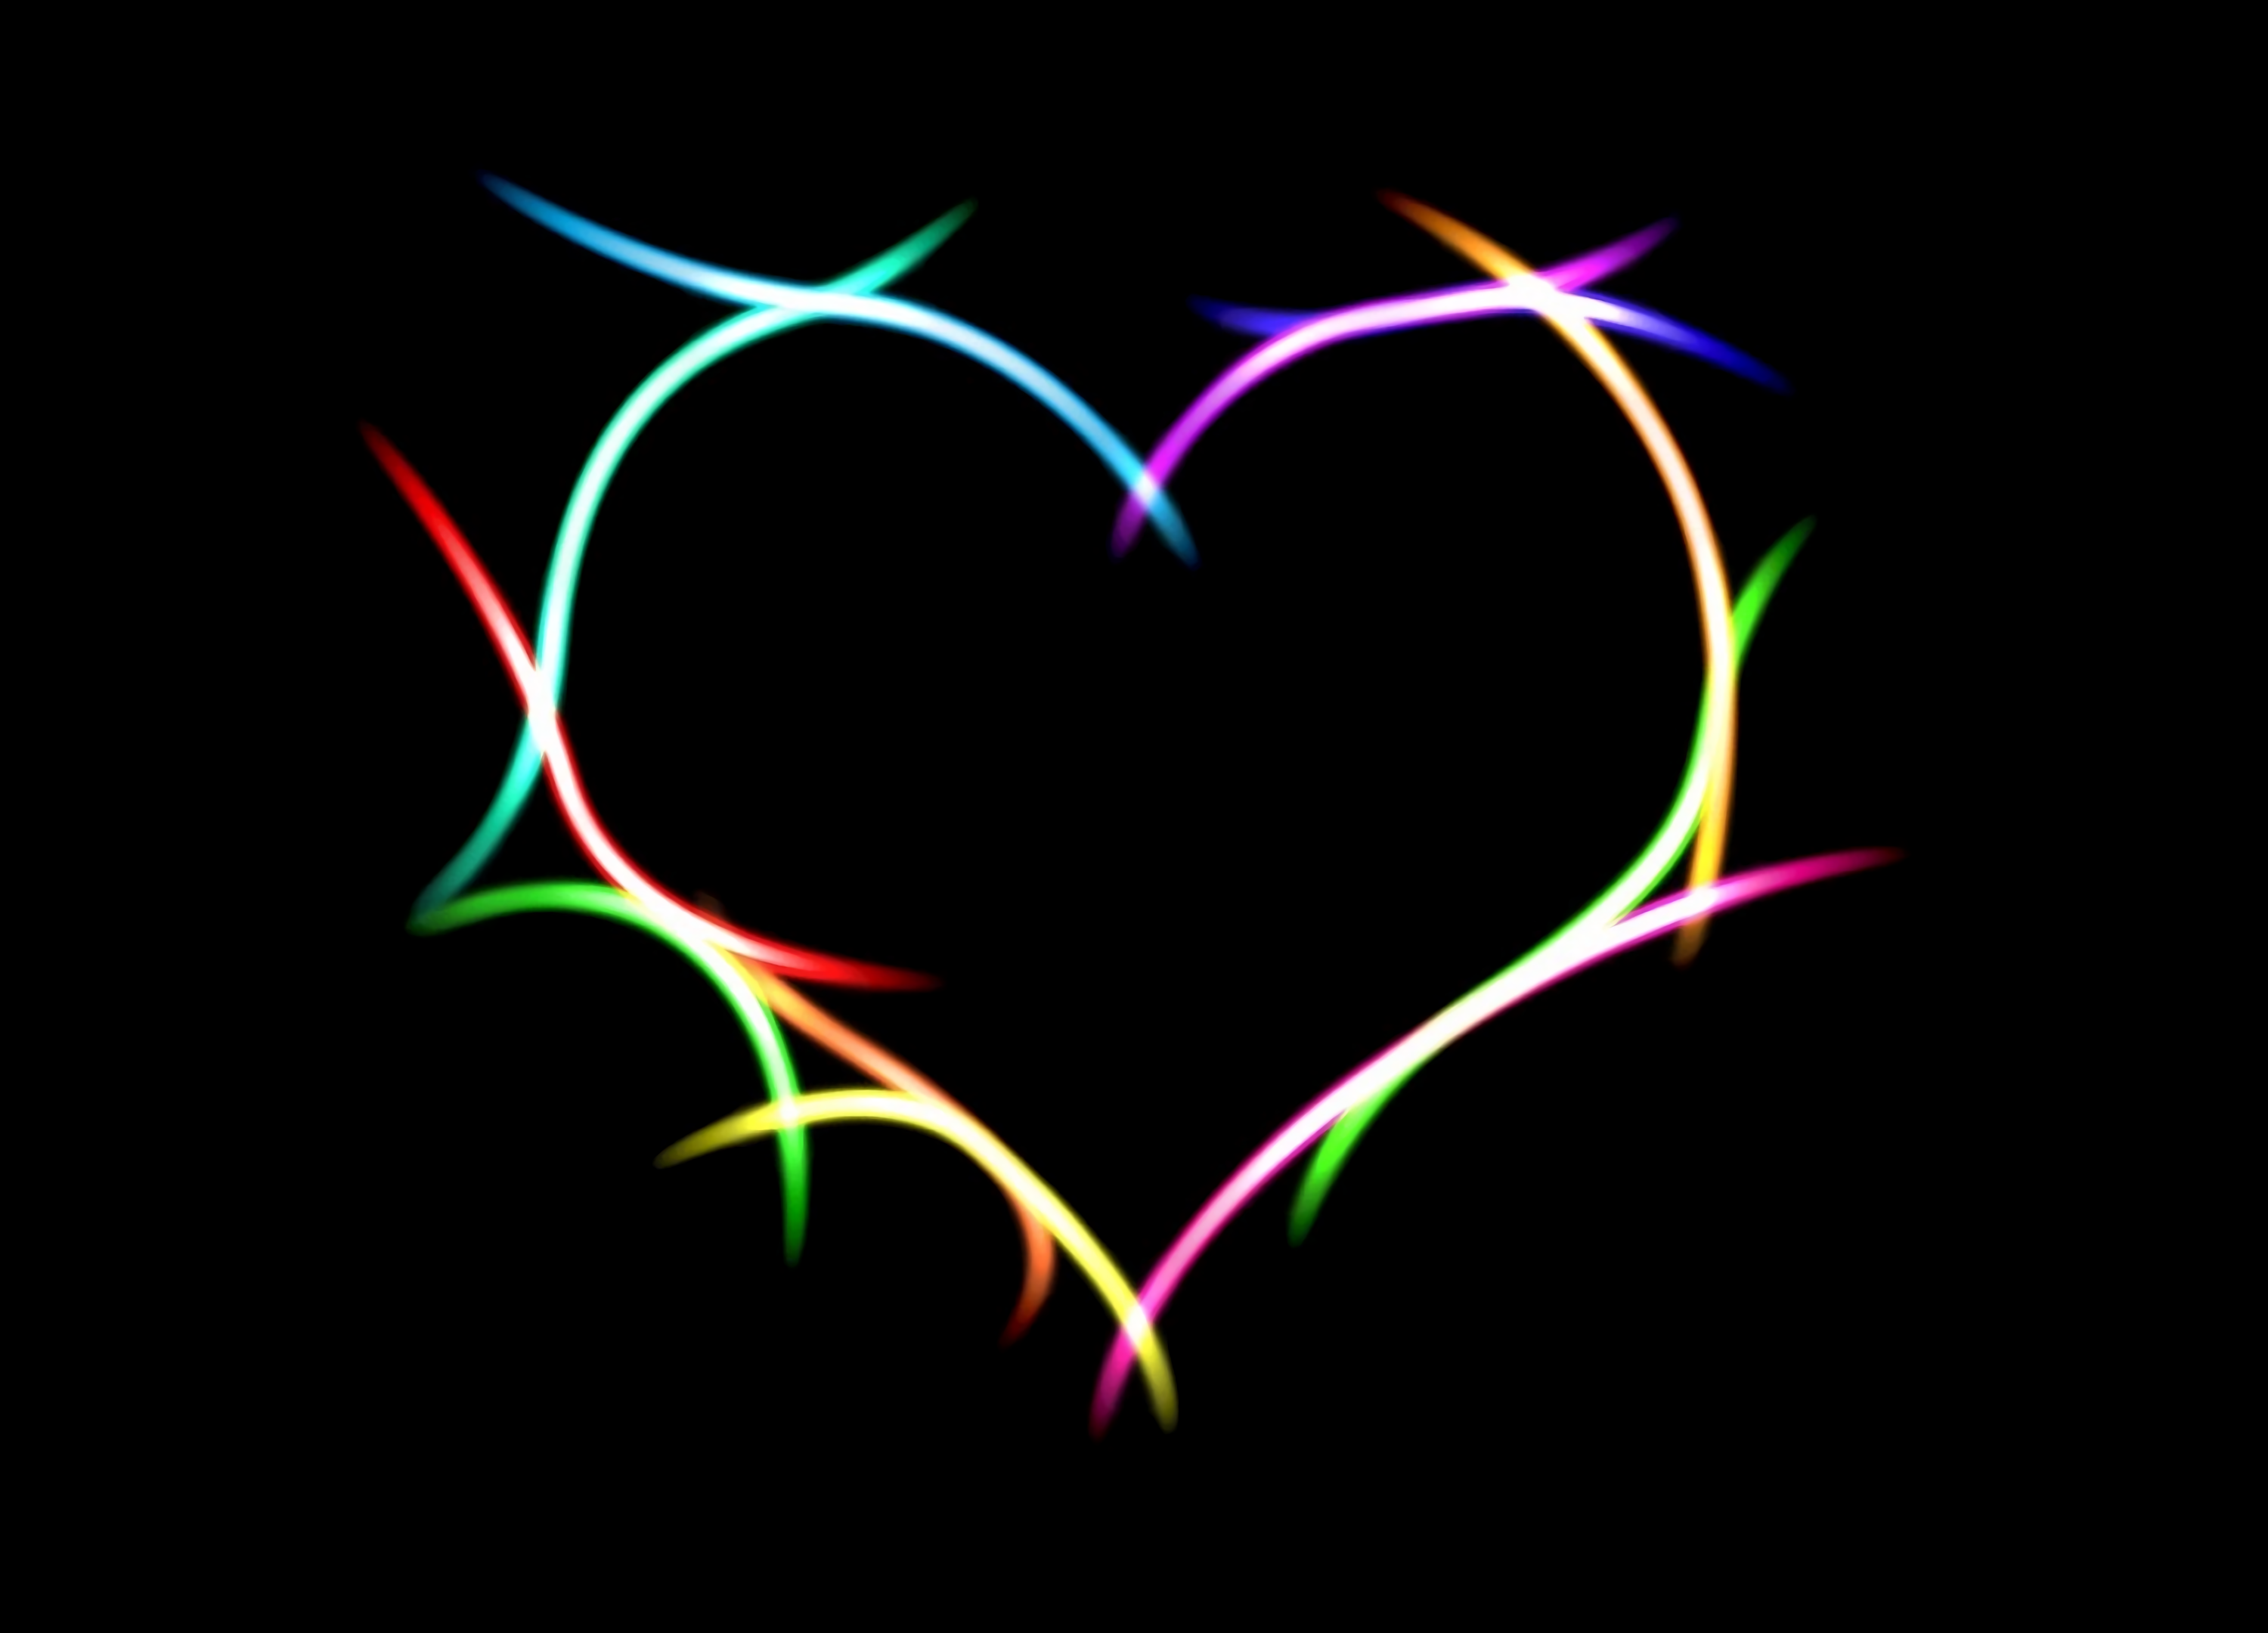 726 Love HD Wallpapers | Backgrounds - Wallpaper Abyss